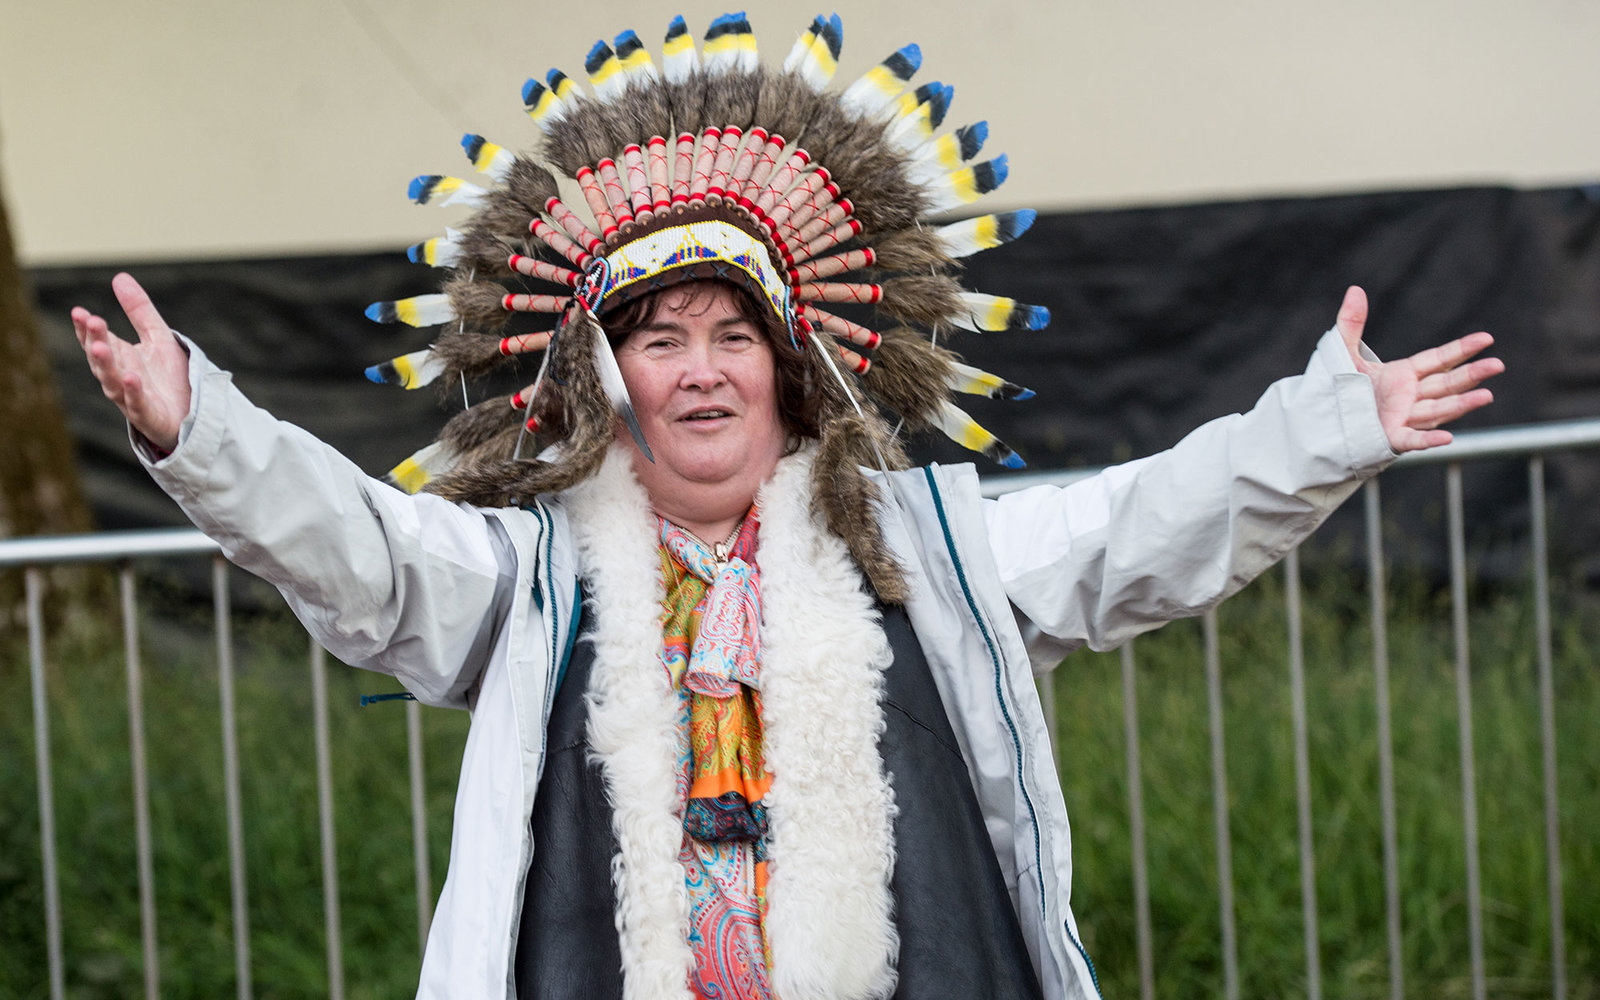 PERTH, SCOTLAND - JULY 12: Britain's Got Talent star Susan Boyle seen posing backstage during 'T in the Park' festival on July 12, 2015 in Perth, Scotland.